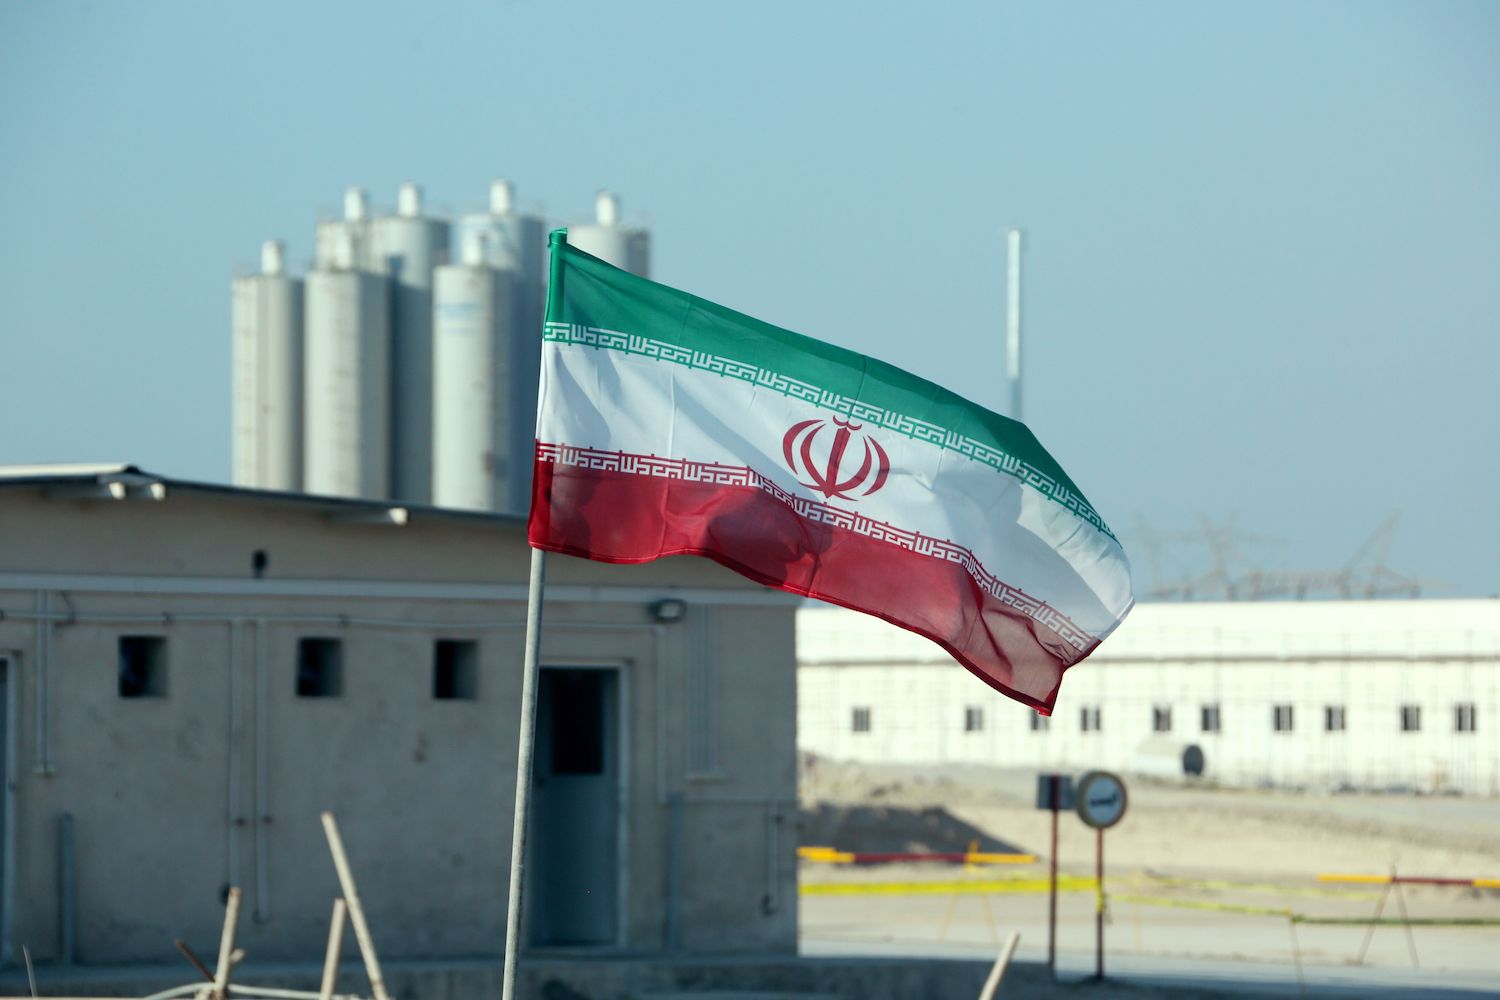 An Iranian flag near Iran's Bushehr nuclear power plant, during an official ceremony to kick-start work on a second reactor at the facility on Nov. 10, 2019.